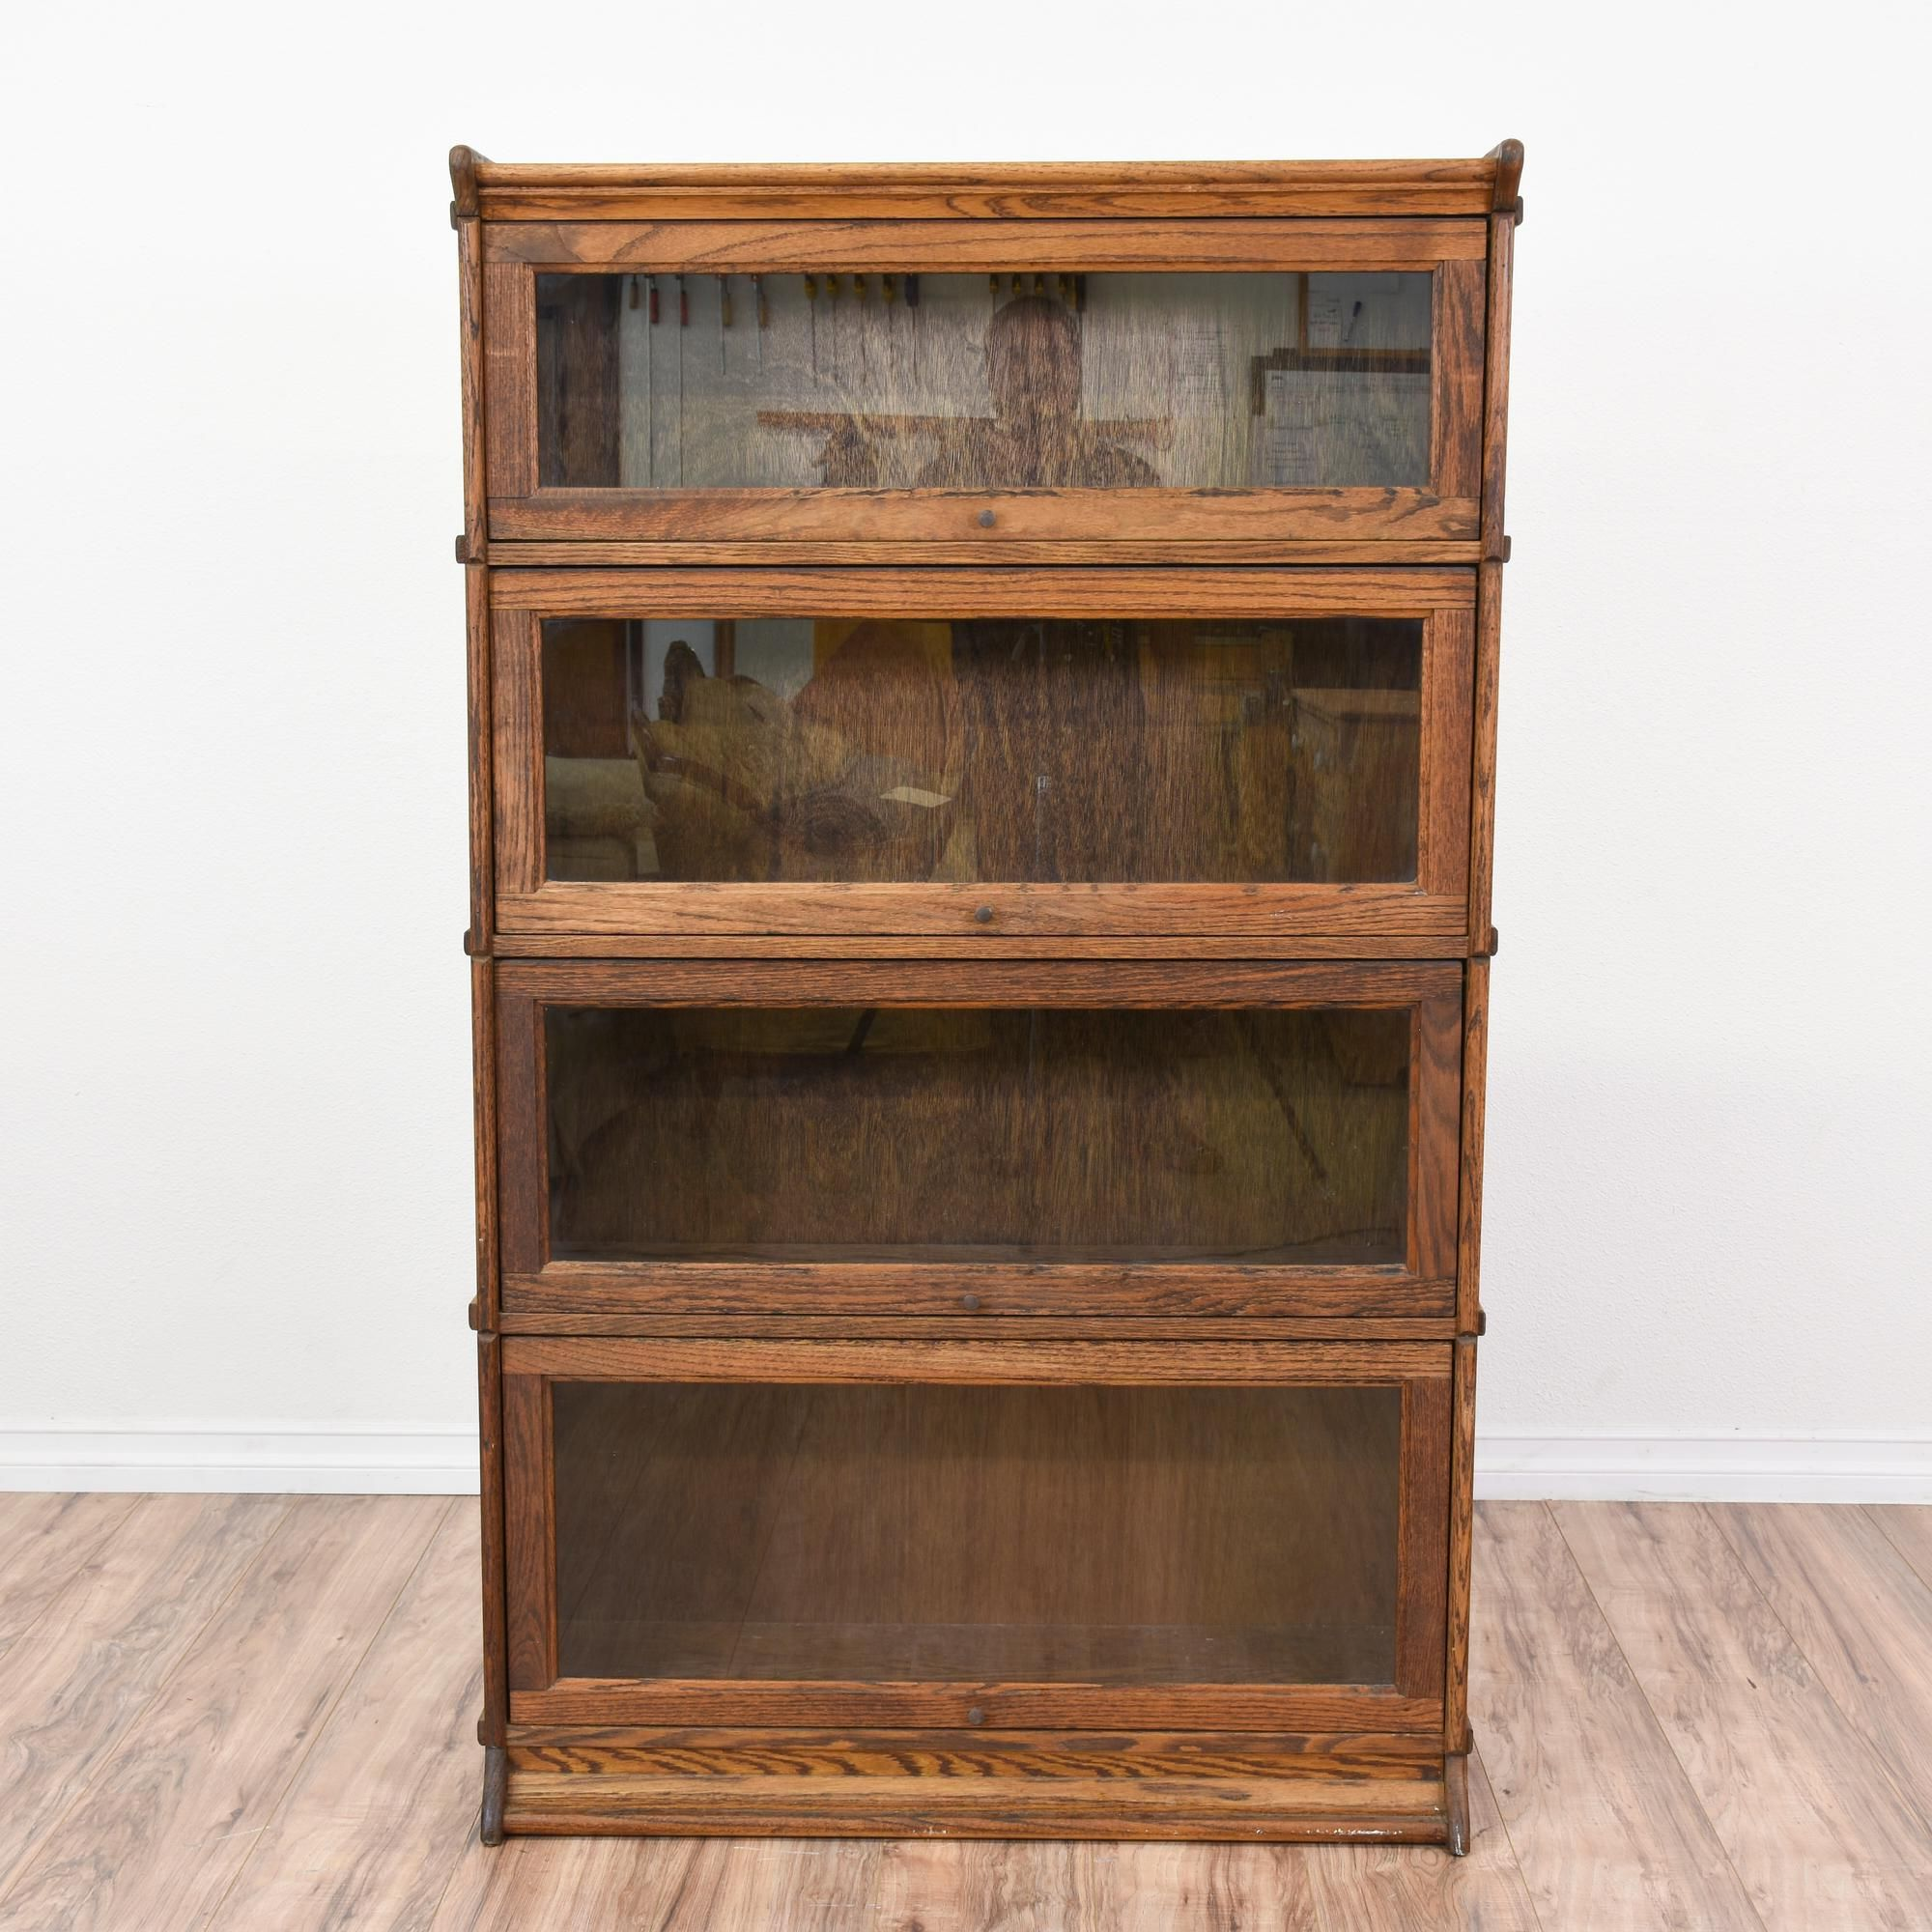 this rustic lawyers bookcase is featured in a solid wood with a